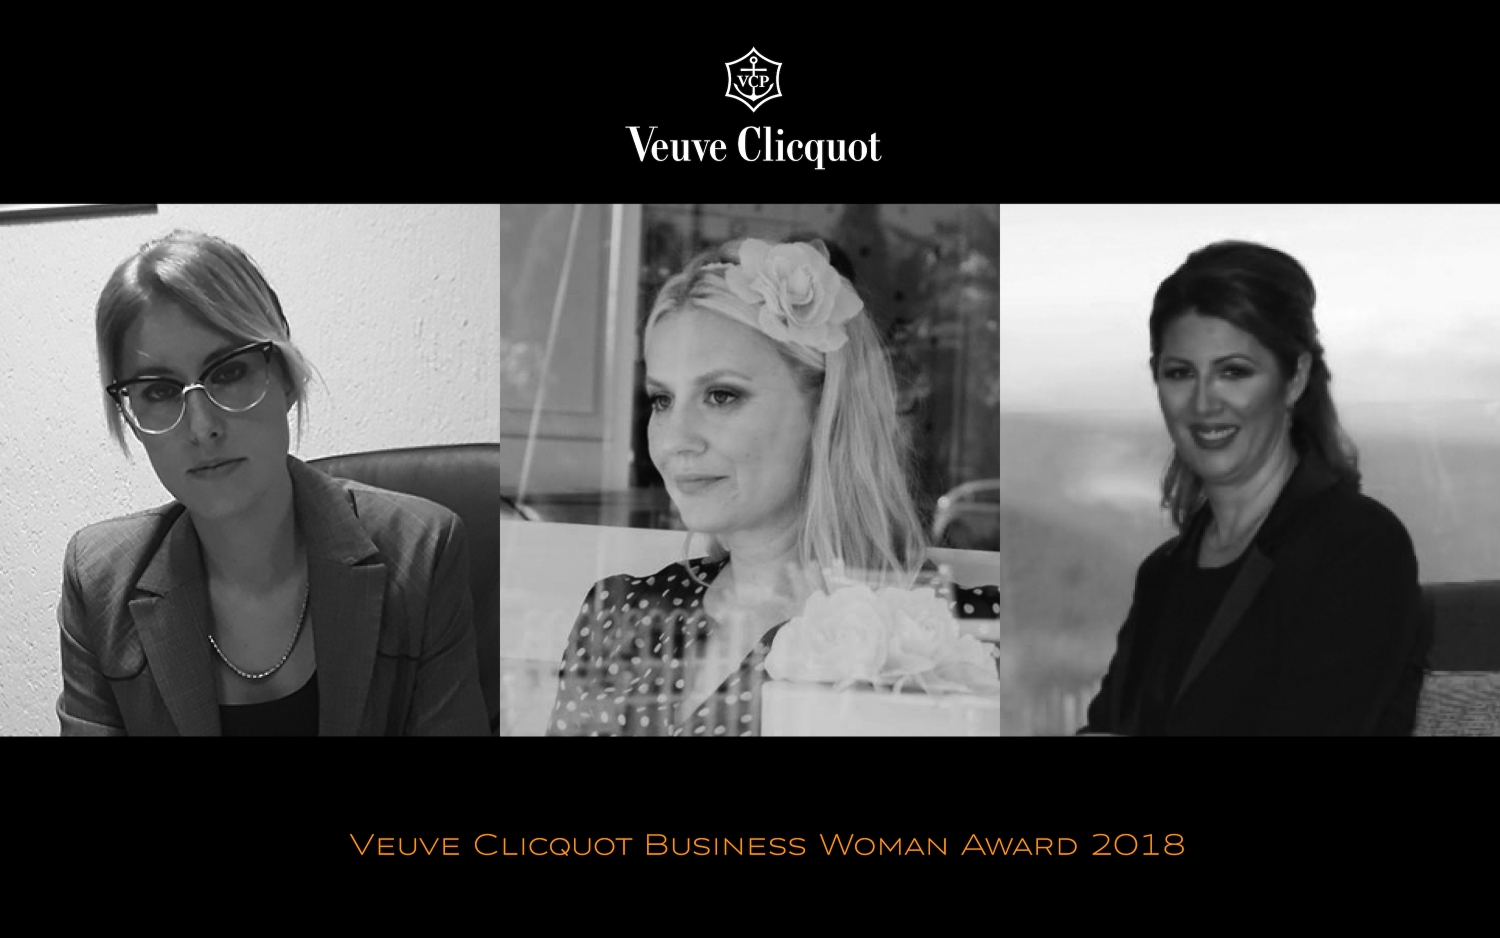 Business Women Award